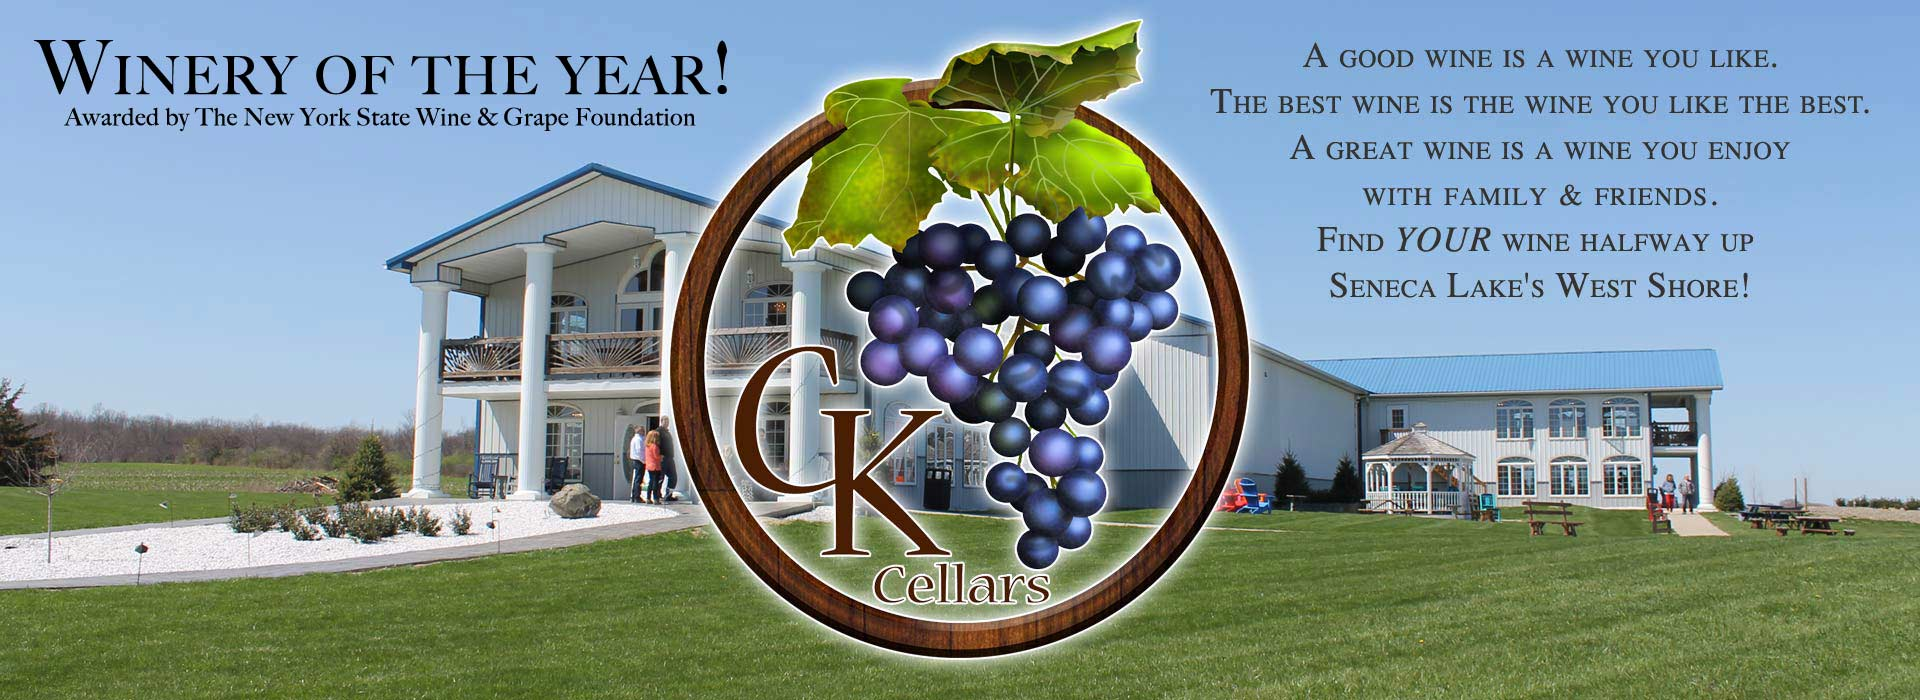 CK Cellars Winery Image with logo